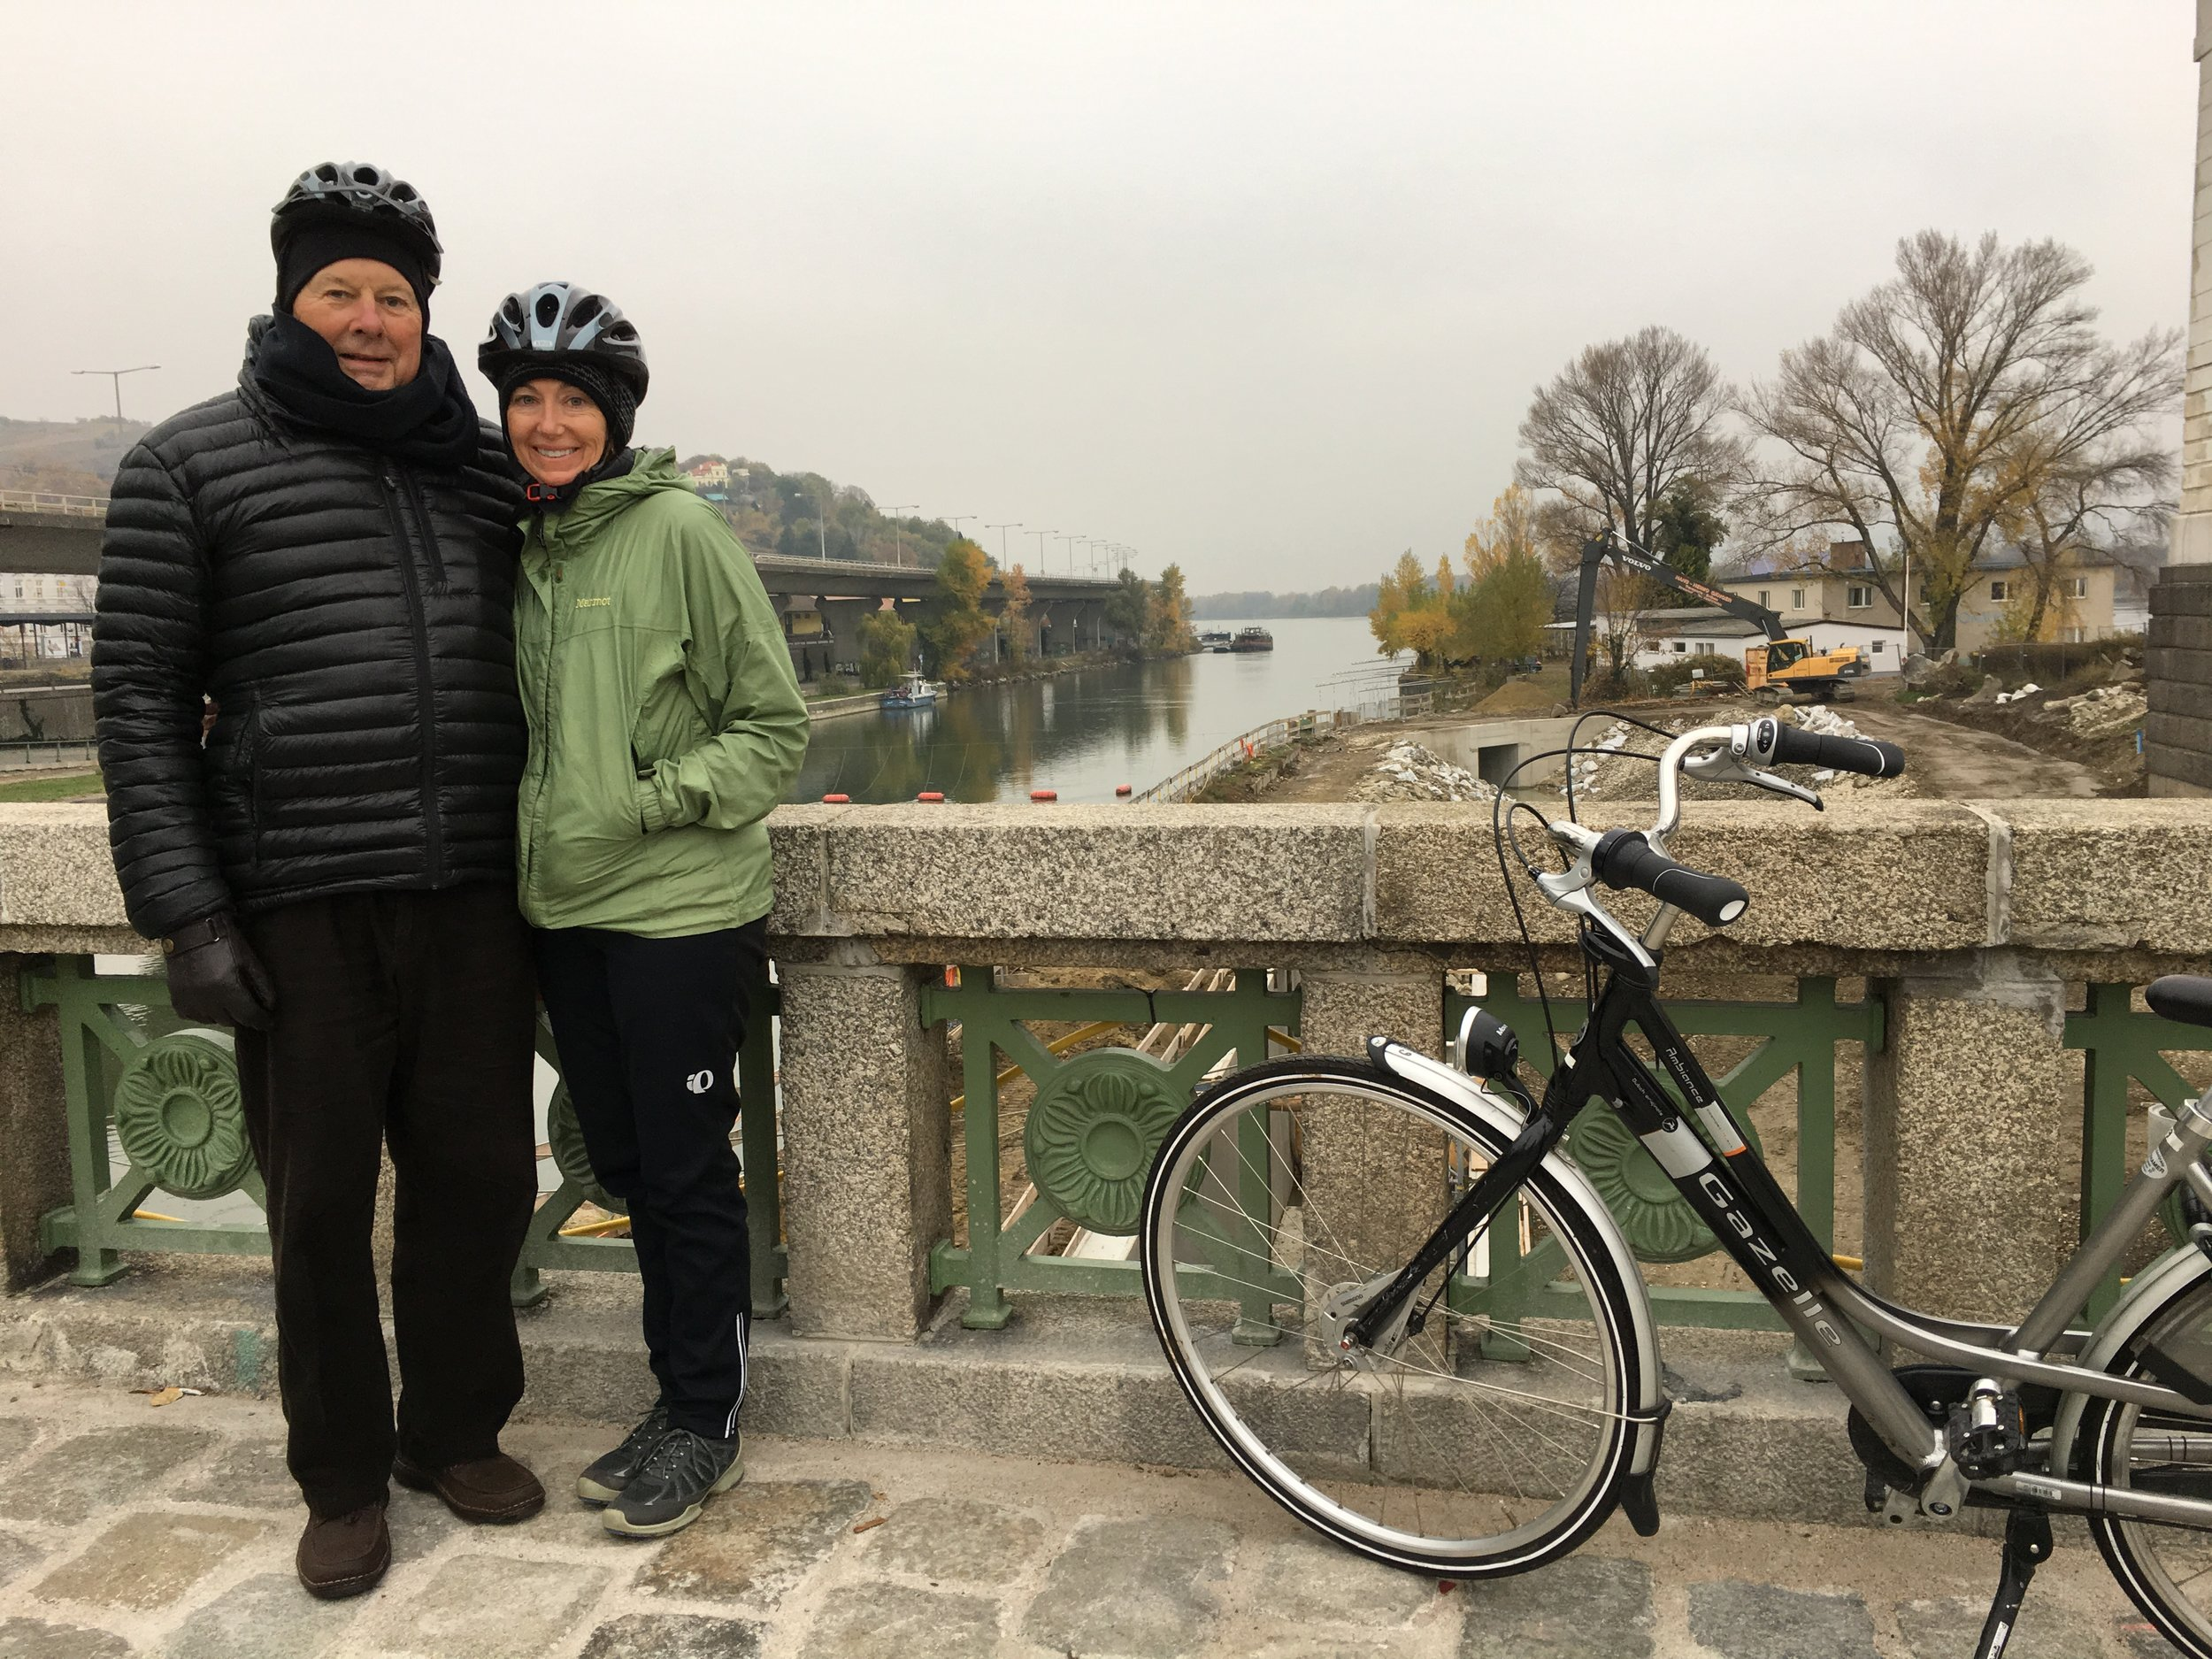 We took the exhilarating 18-mile bike excursion to Klosterneuburg Abbey in Vienna during our AmaWaterways cruise in November.